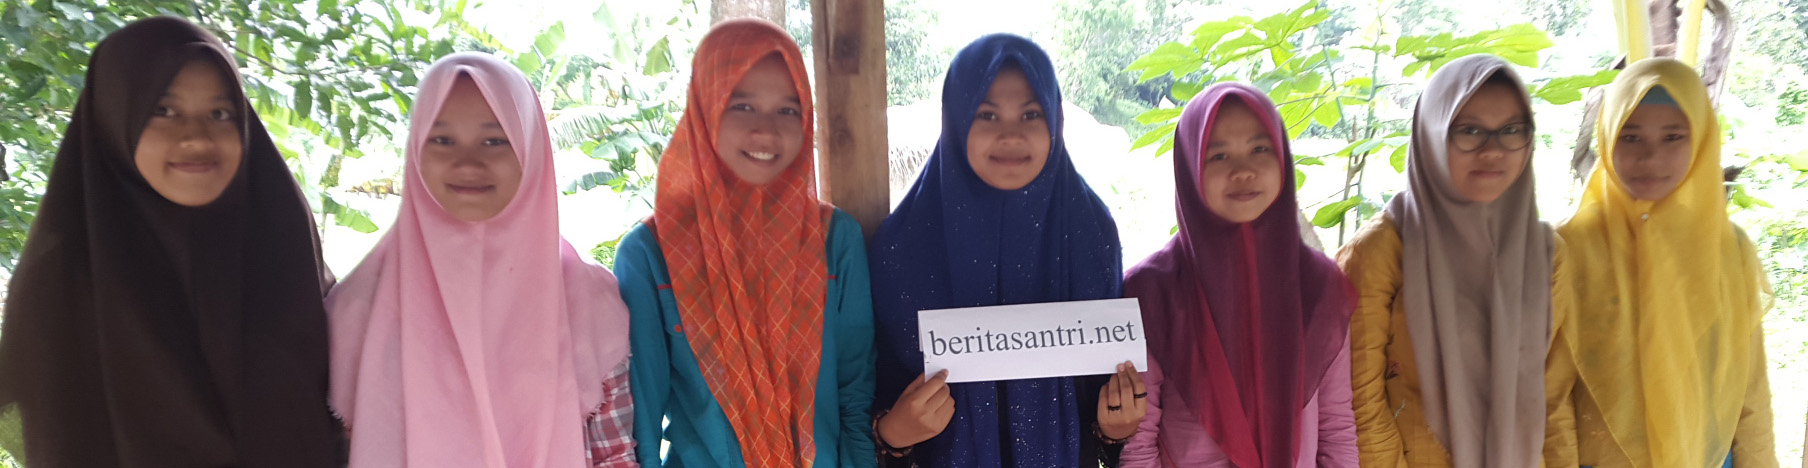 Beritasantri.net